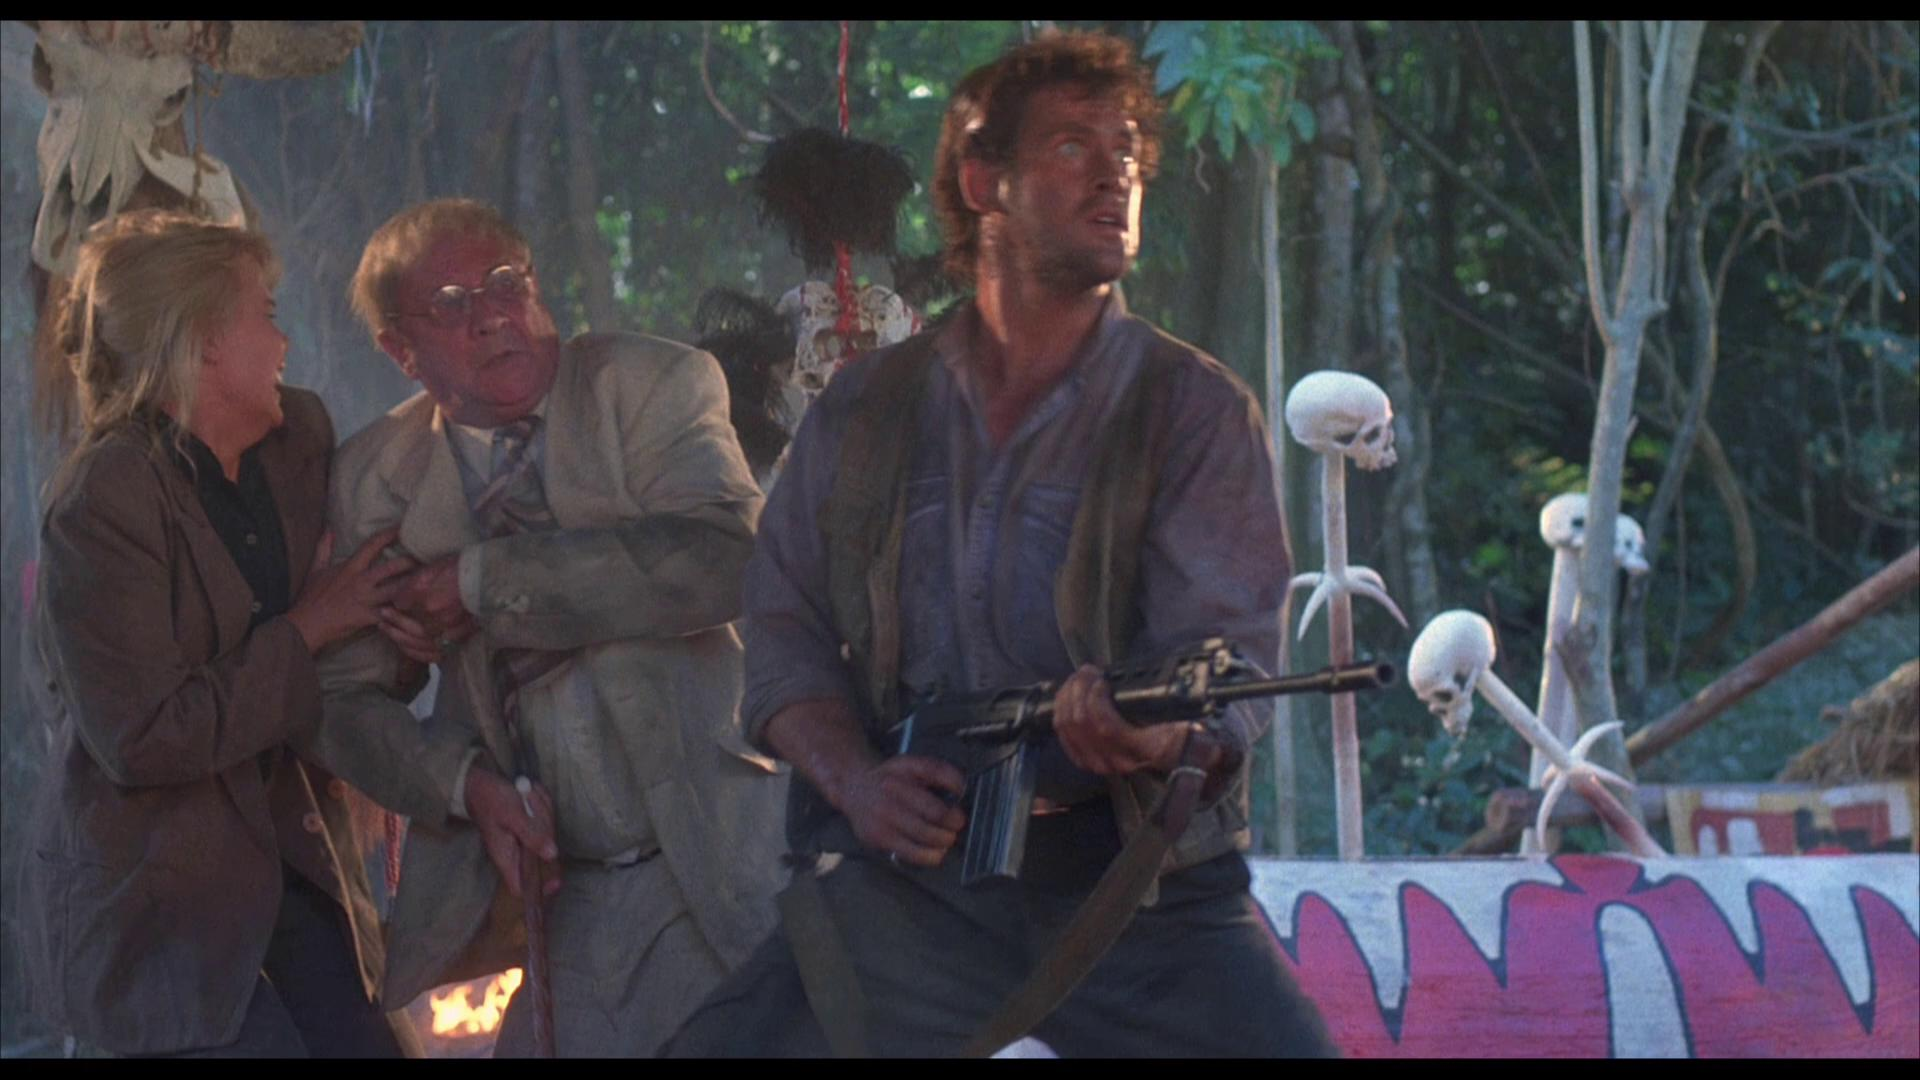 Donald Pleasence, Michael Dudikoff, and Sarah Maur Thorp in River of Death (1989)